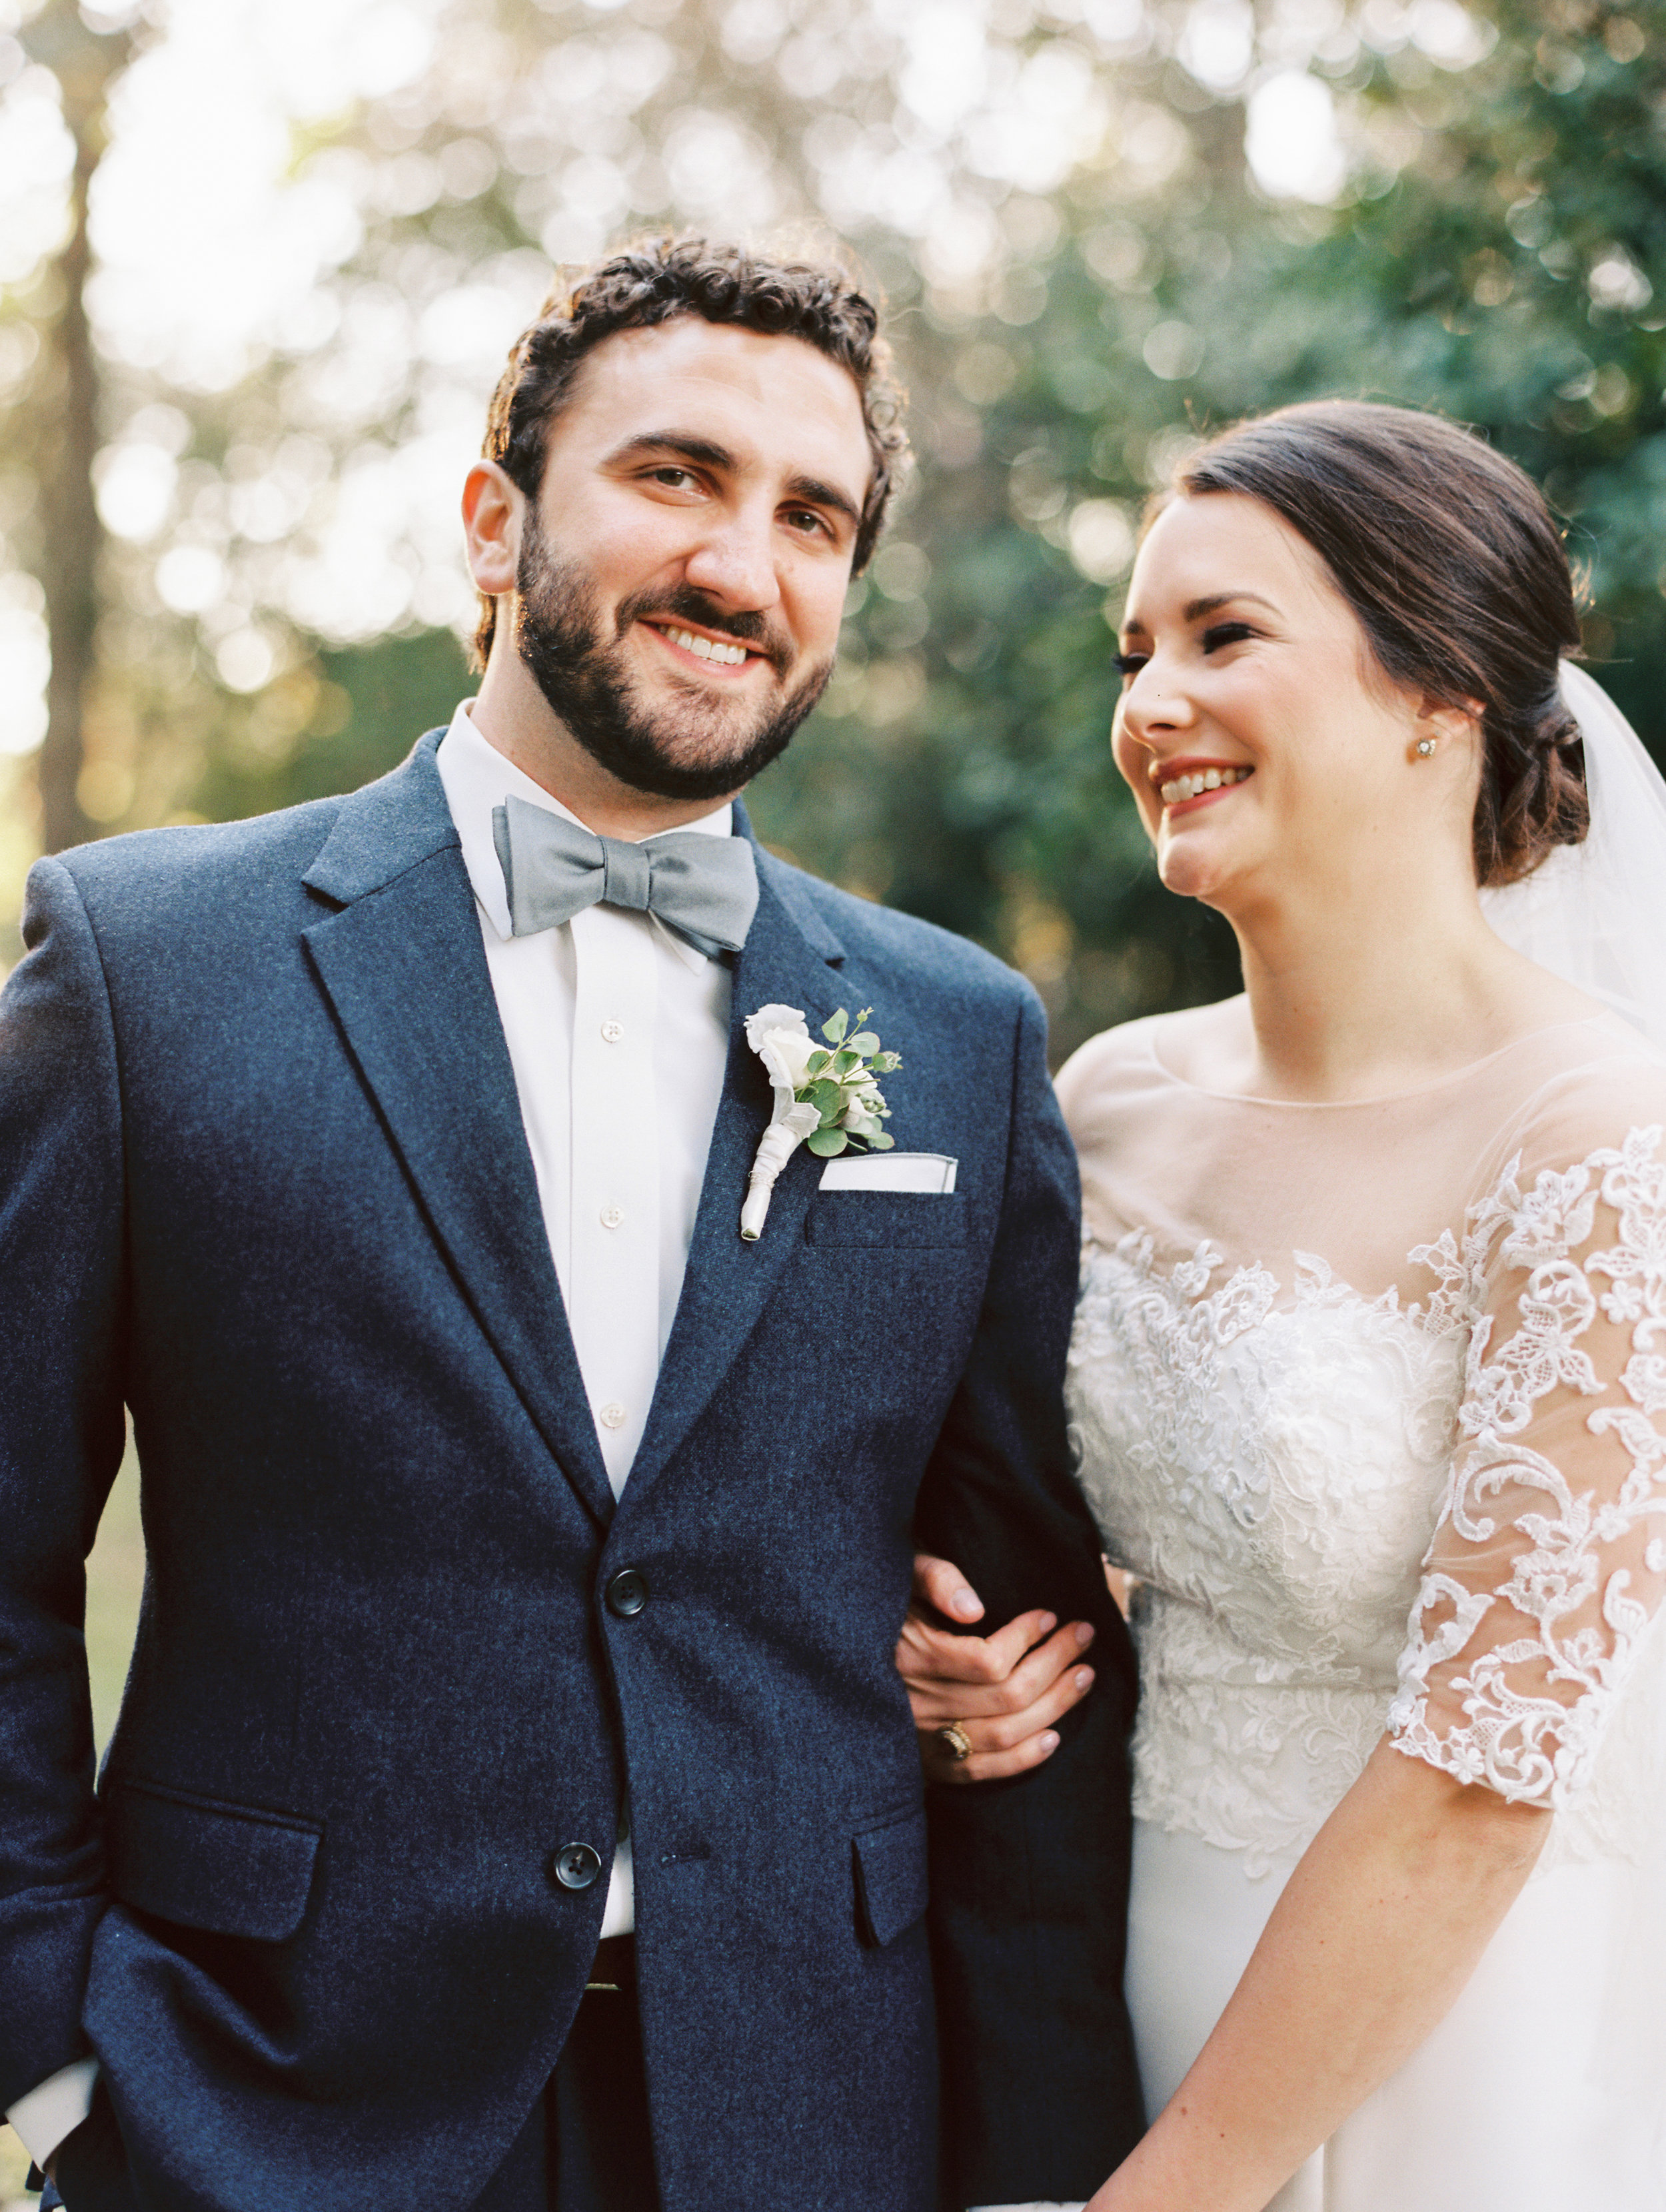 Southern Fete, Southern Wedding, Bride and Groom, Sarah Beth Photography, Petals and Pots